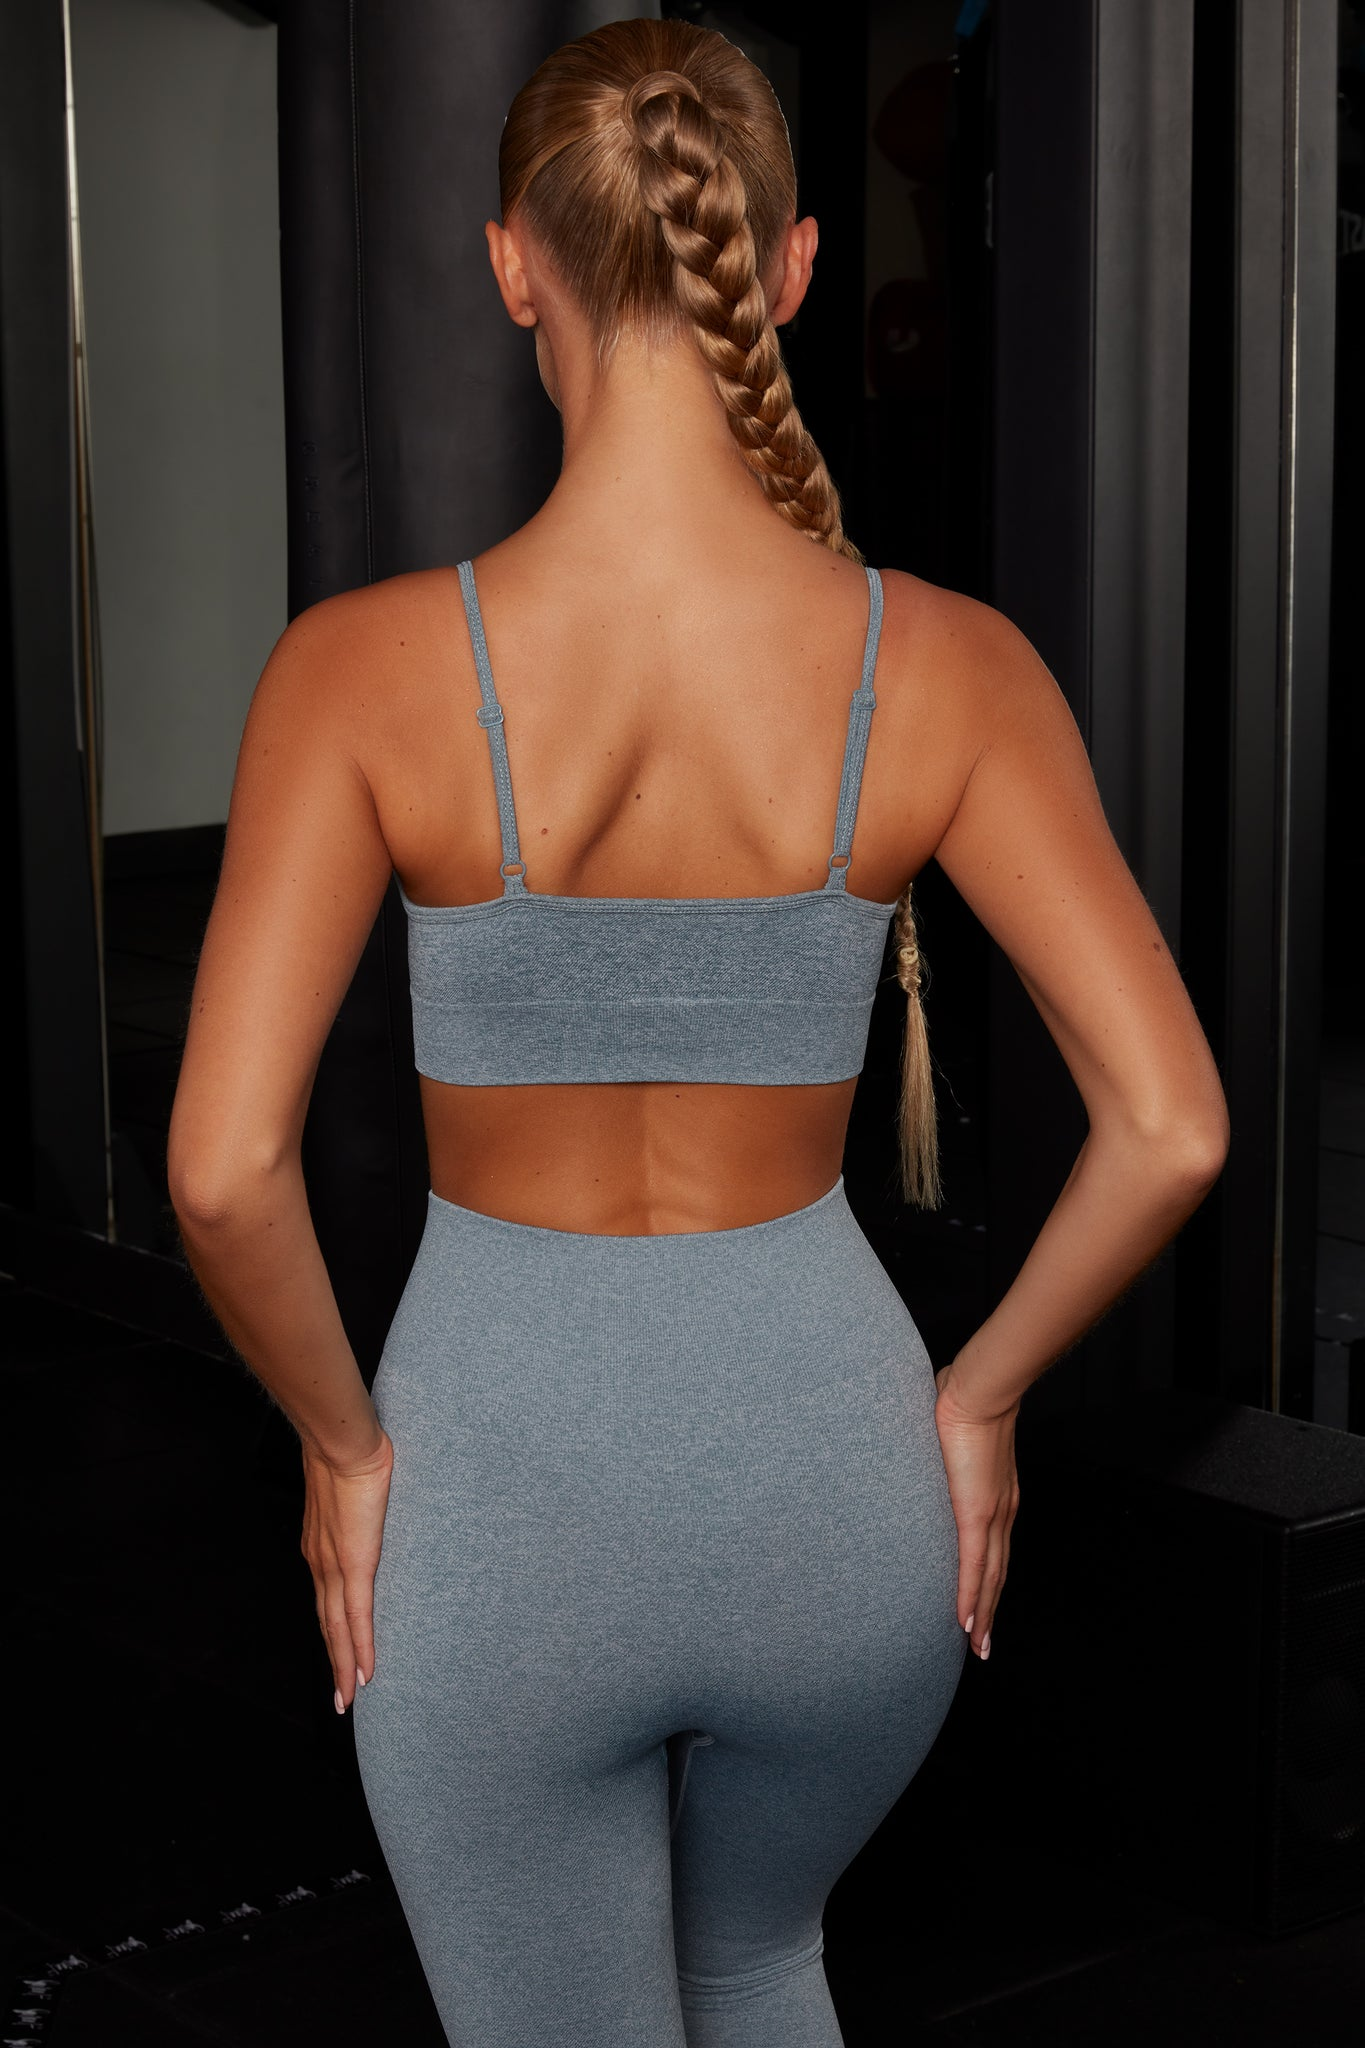 Plain blue melange V neck sports bra with ribbed underband, reflective branding and thin adjustable straps. Image 3 of 6.